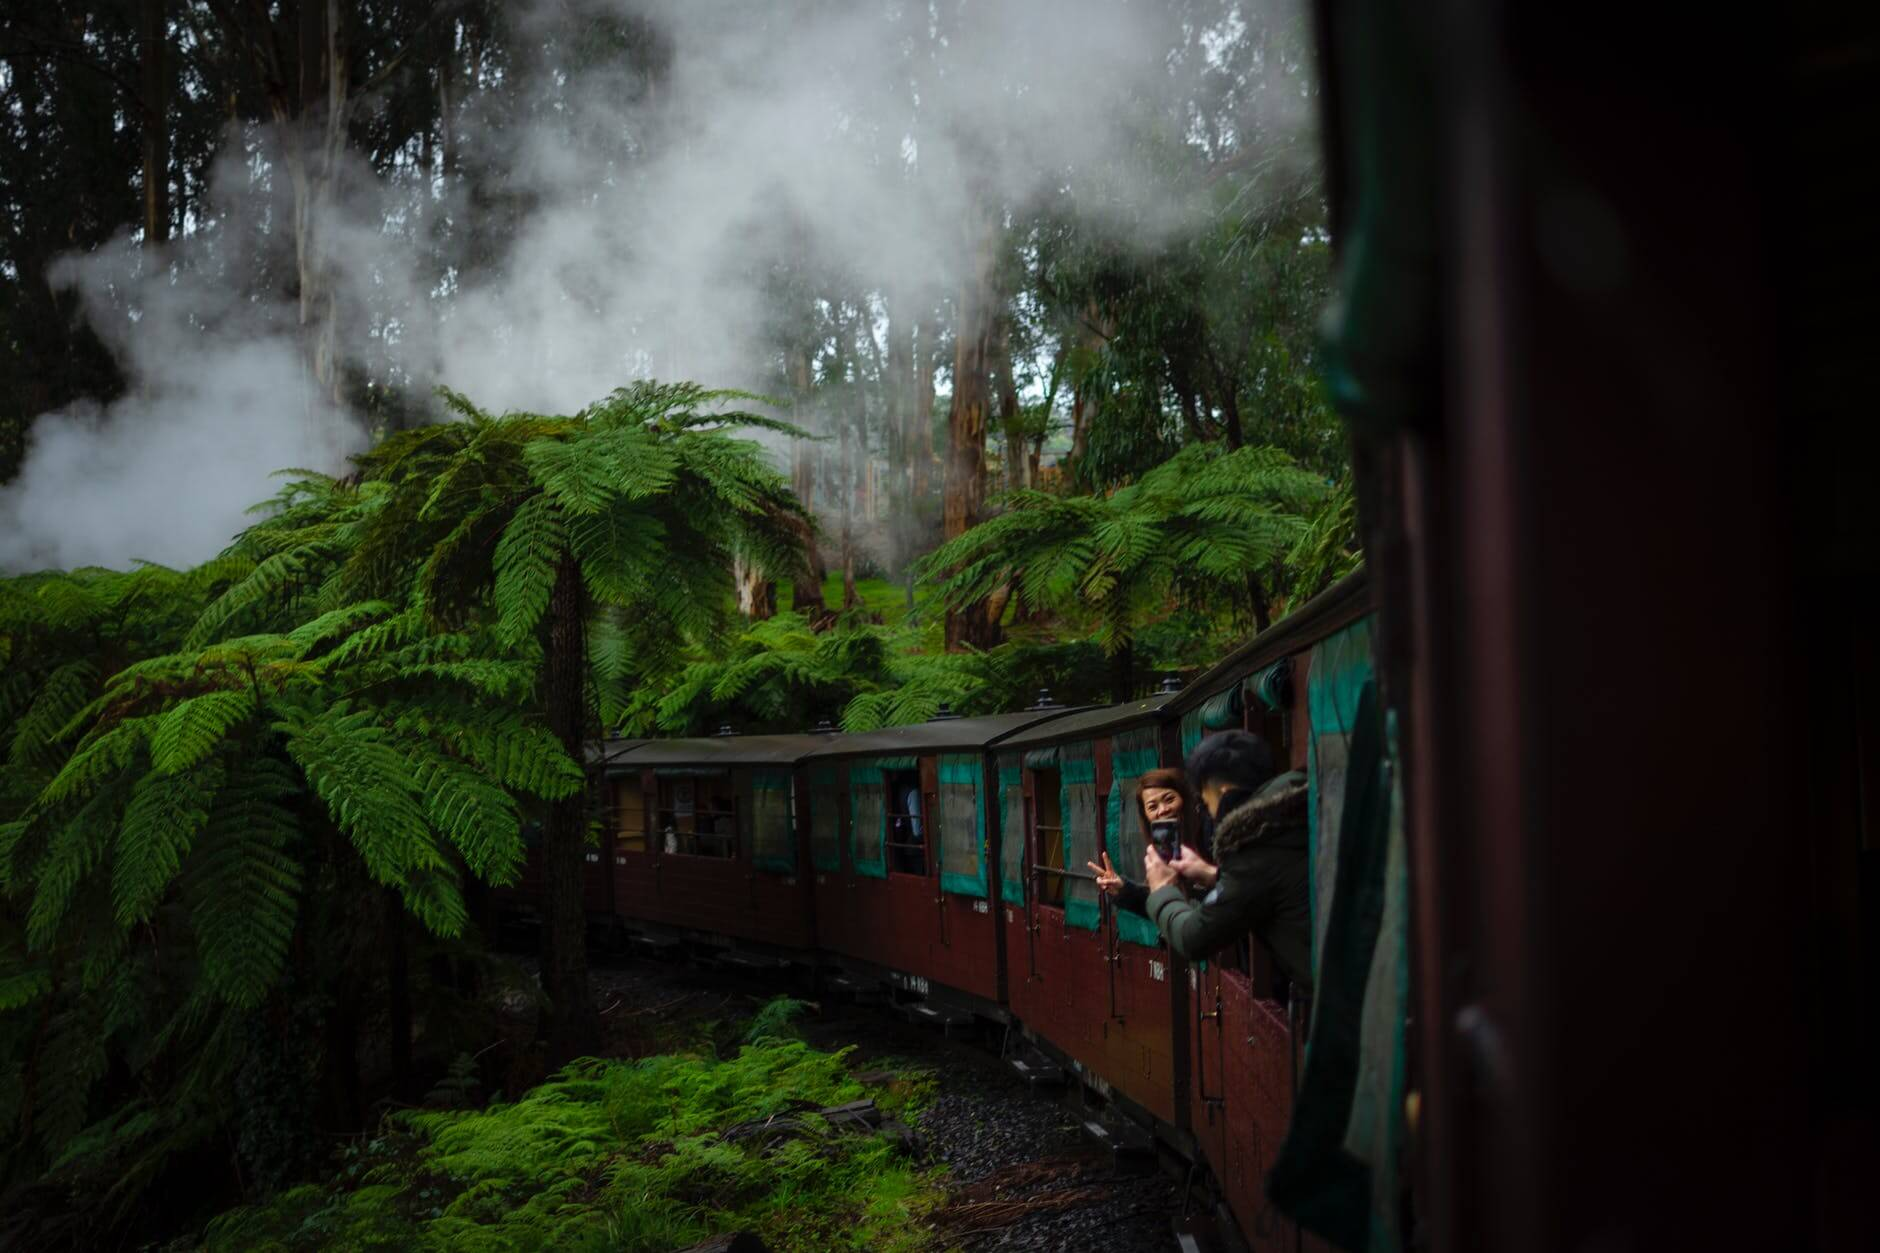 train vacation with husband